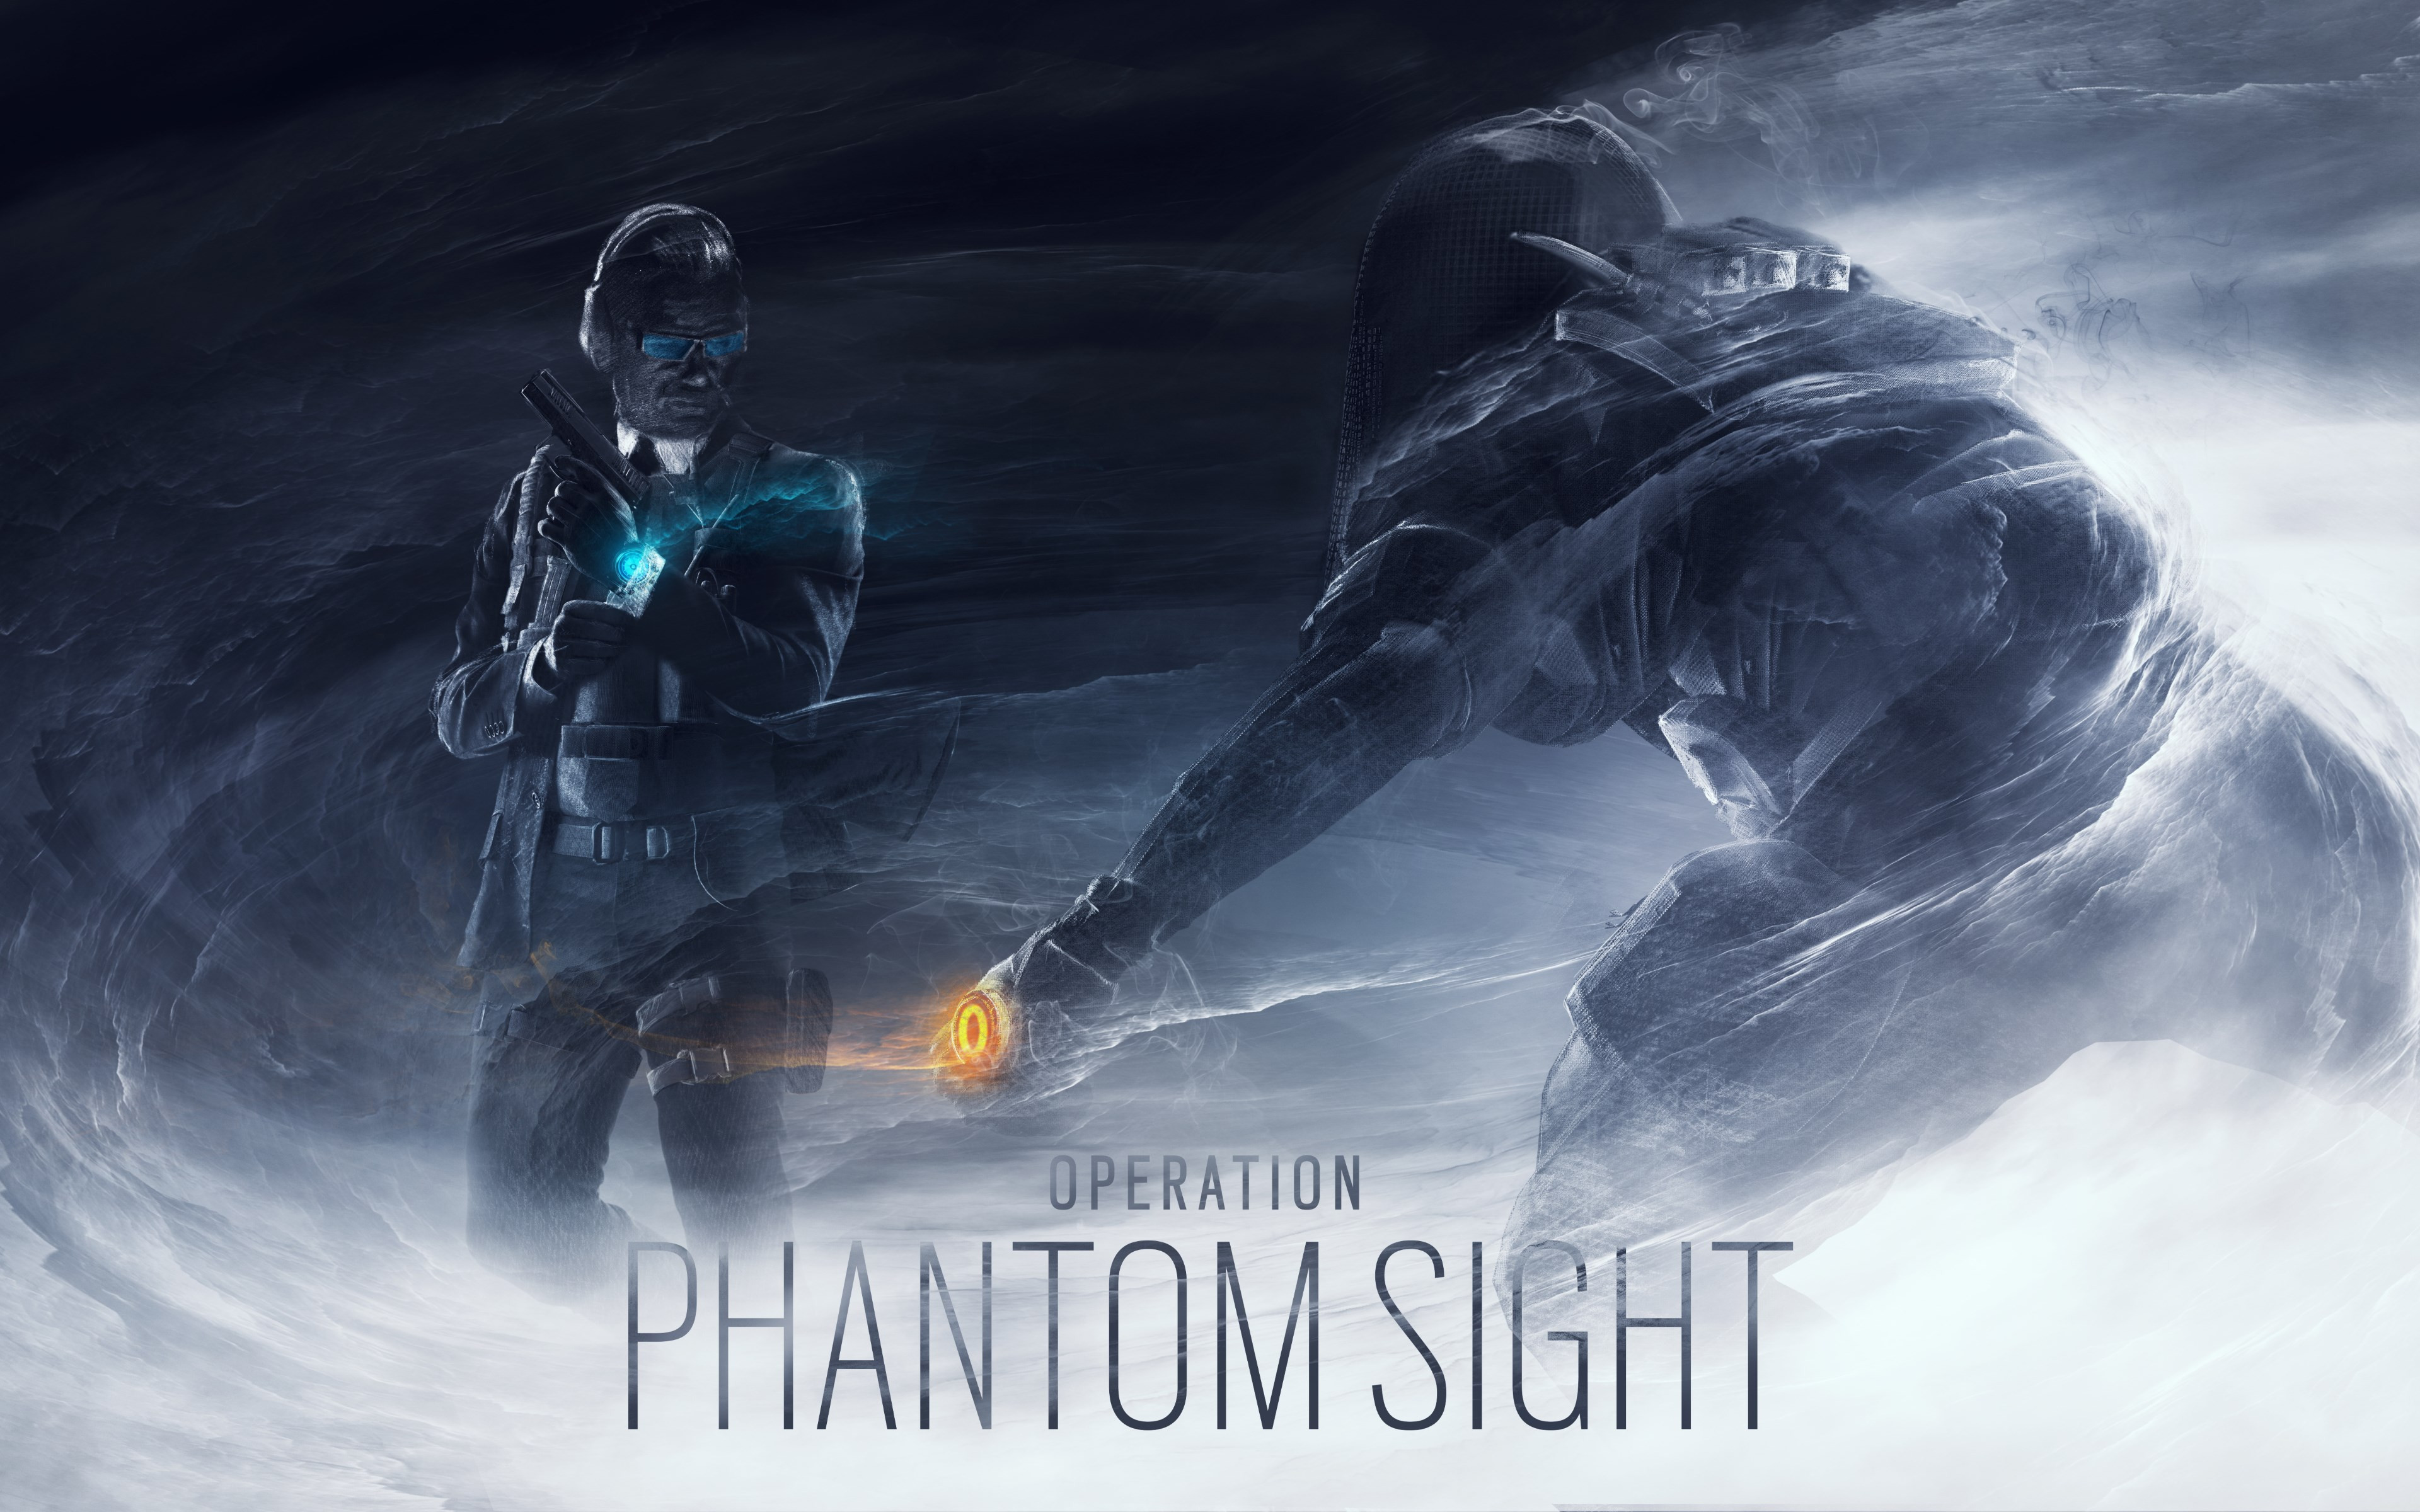 Rainbow Six Siege Operation Phantom Sight | 3840x2400 wallpaper